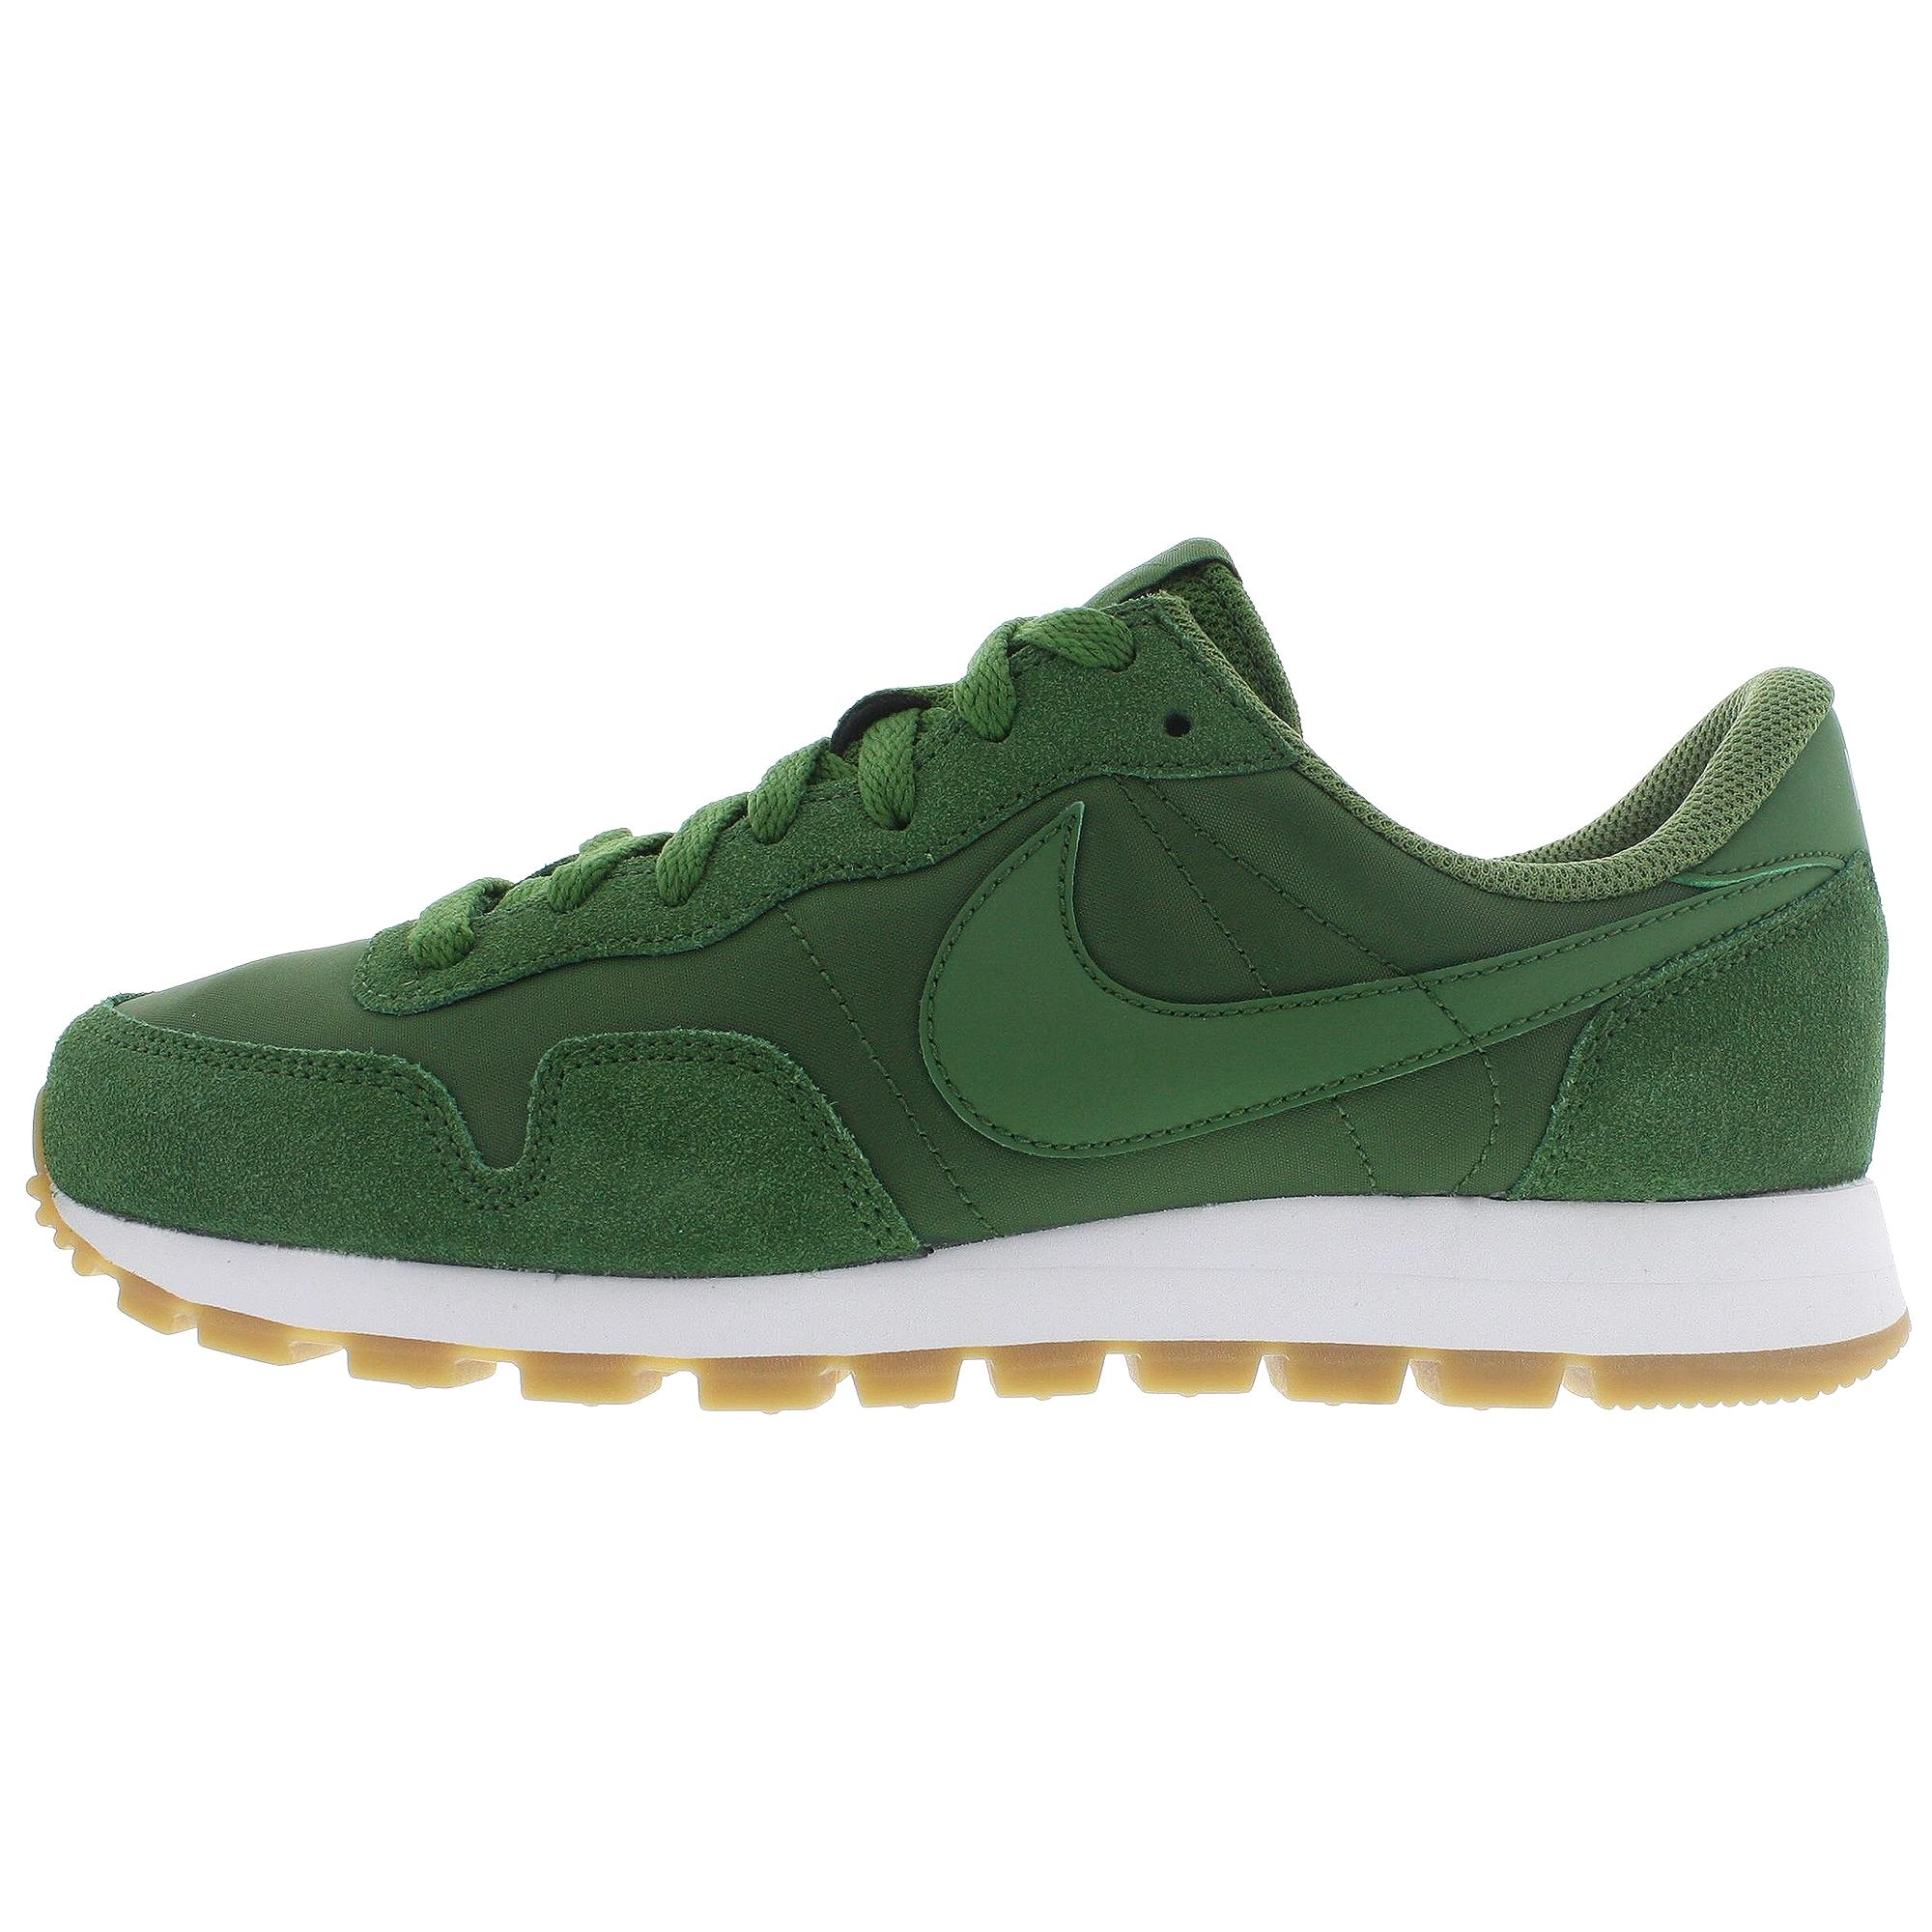 fba2015a824c Nike Magistax Proximo Ii Tf Bling Tennis Shoes | Portal For Tenders